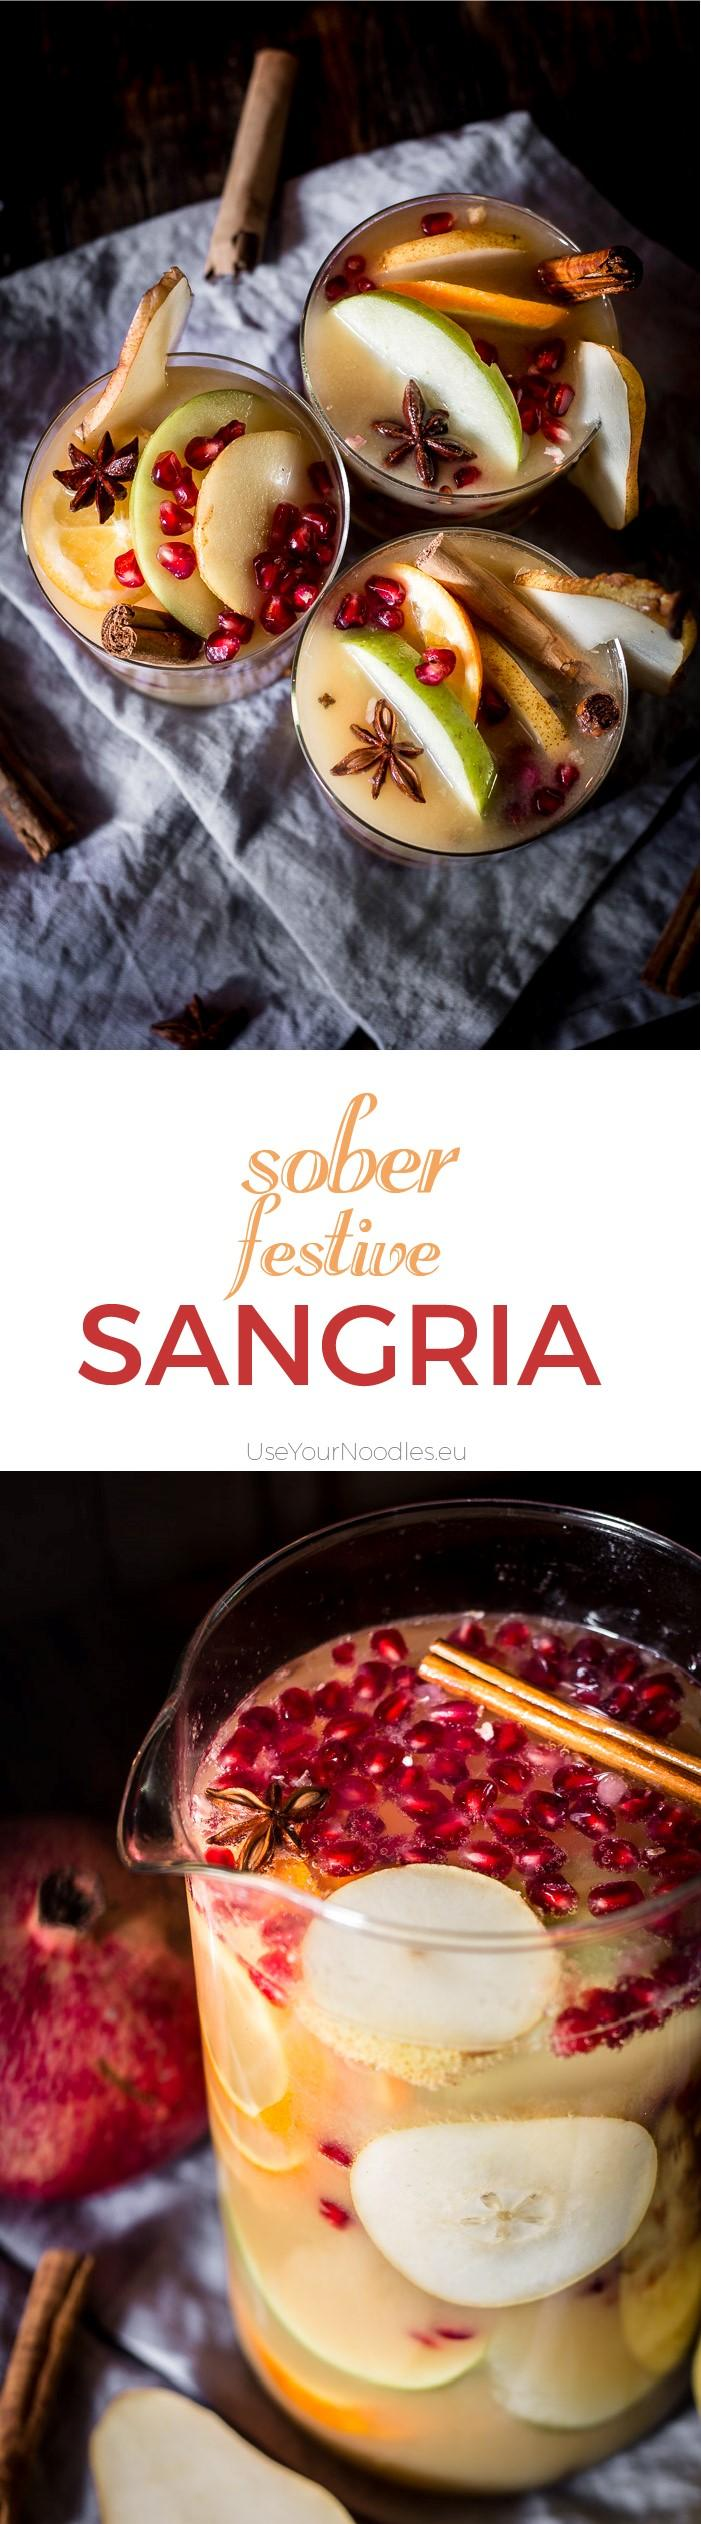 I love non-alcoholic festive sangria, especially when it tastes like winter with all its beautiful mixed fruits and Christmas spices. It's the easiest thing in the world to do and you can prepare it ahead of time. Click to find the whole recipe or pin and save for later!